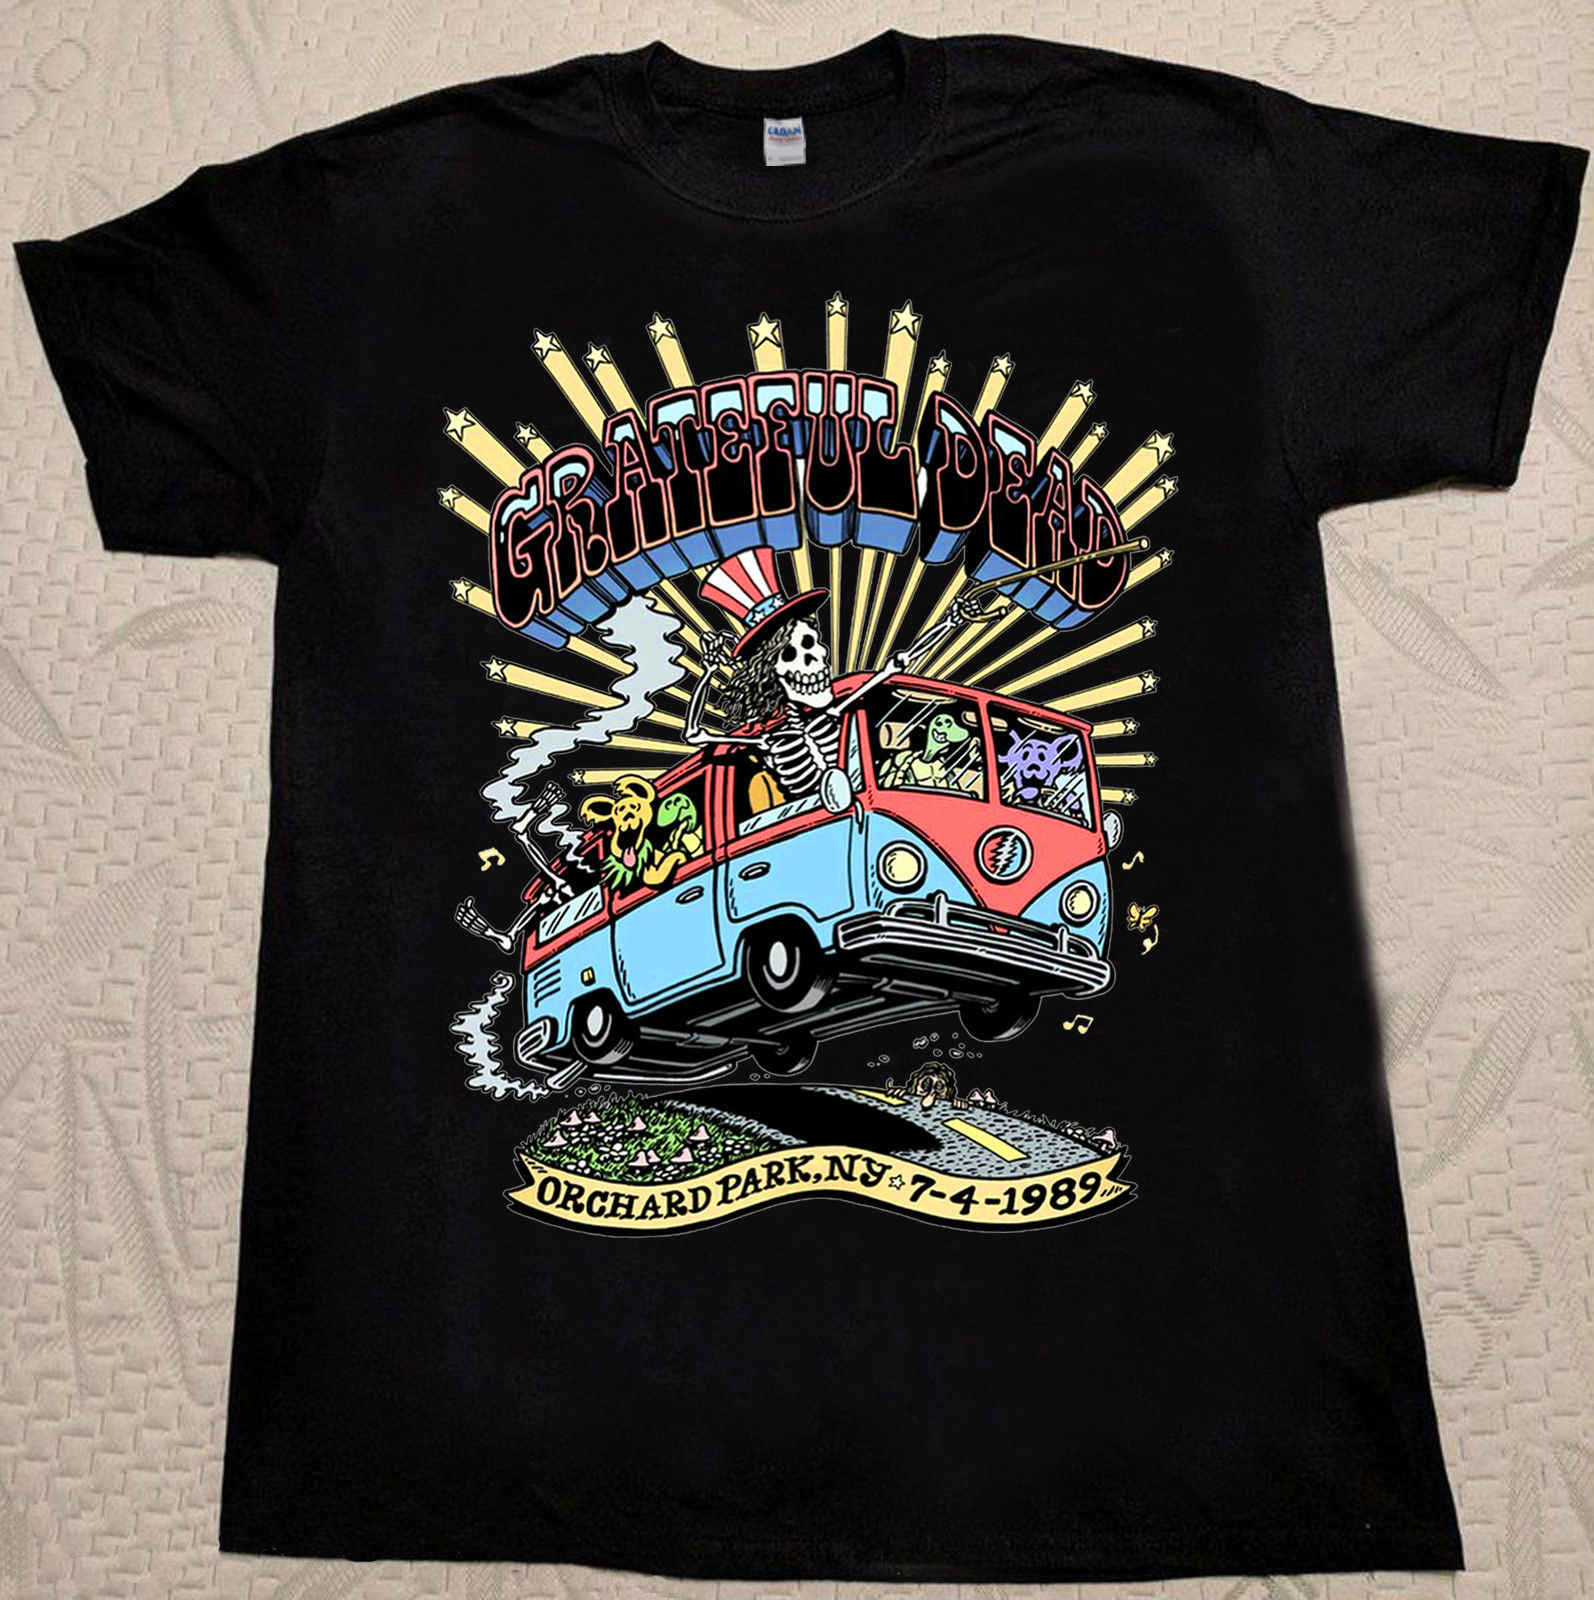 VINTAGE 1989 Grateful dead Orchard Park,Ny Tour T-Shirt  REPRINT T shirt printing,100% Cotton Classic tee 2019 hot tees